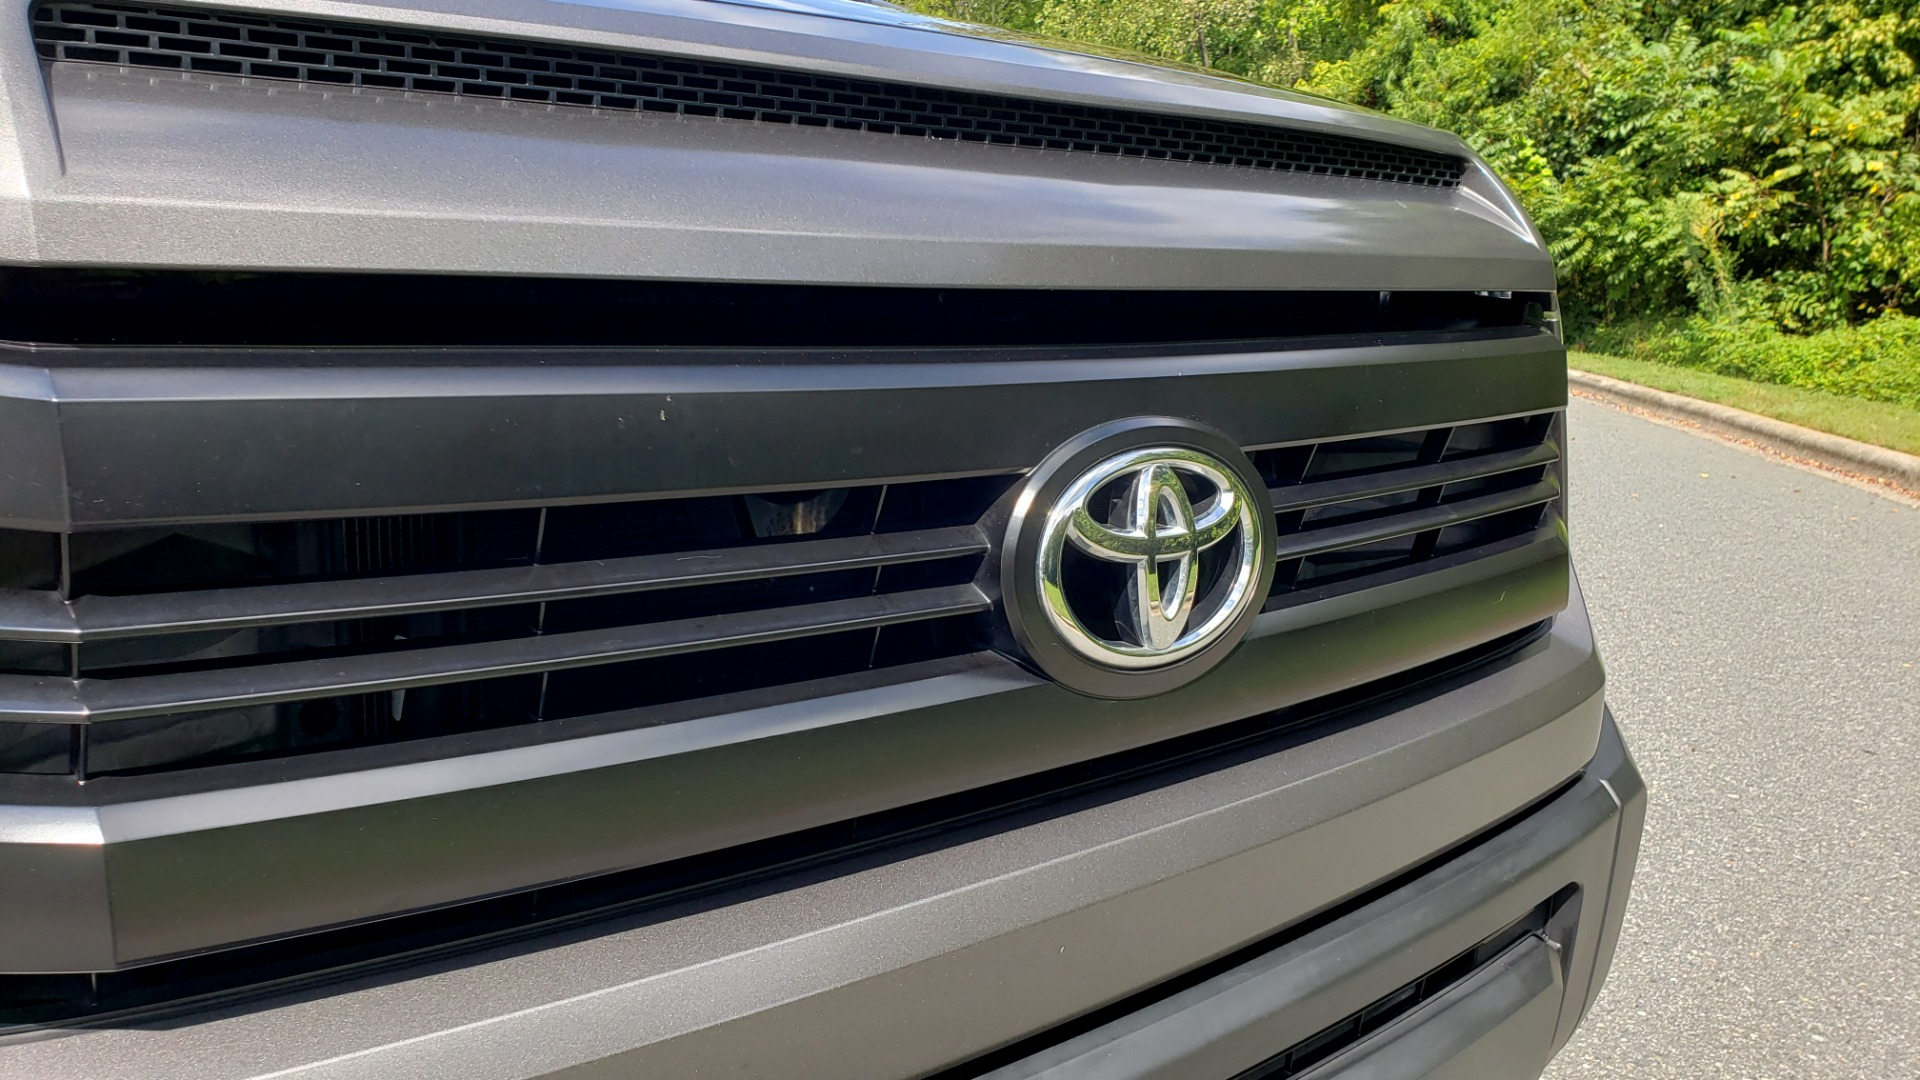 Used 2017 Toyota TUNDRA 4WD SR DOUBLECAB / 4WD / 6.5' BED / V8 / AUTO / REARVIEW for sale Sold at Formula Imports in Charlotte NC 28227 17